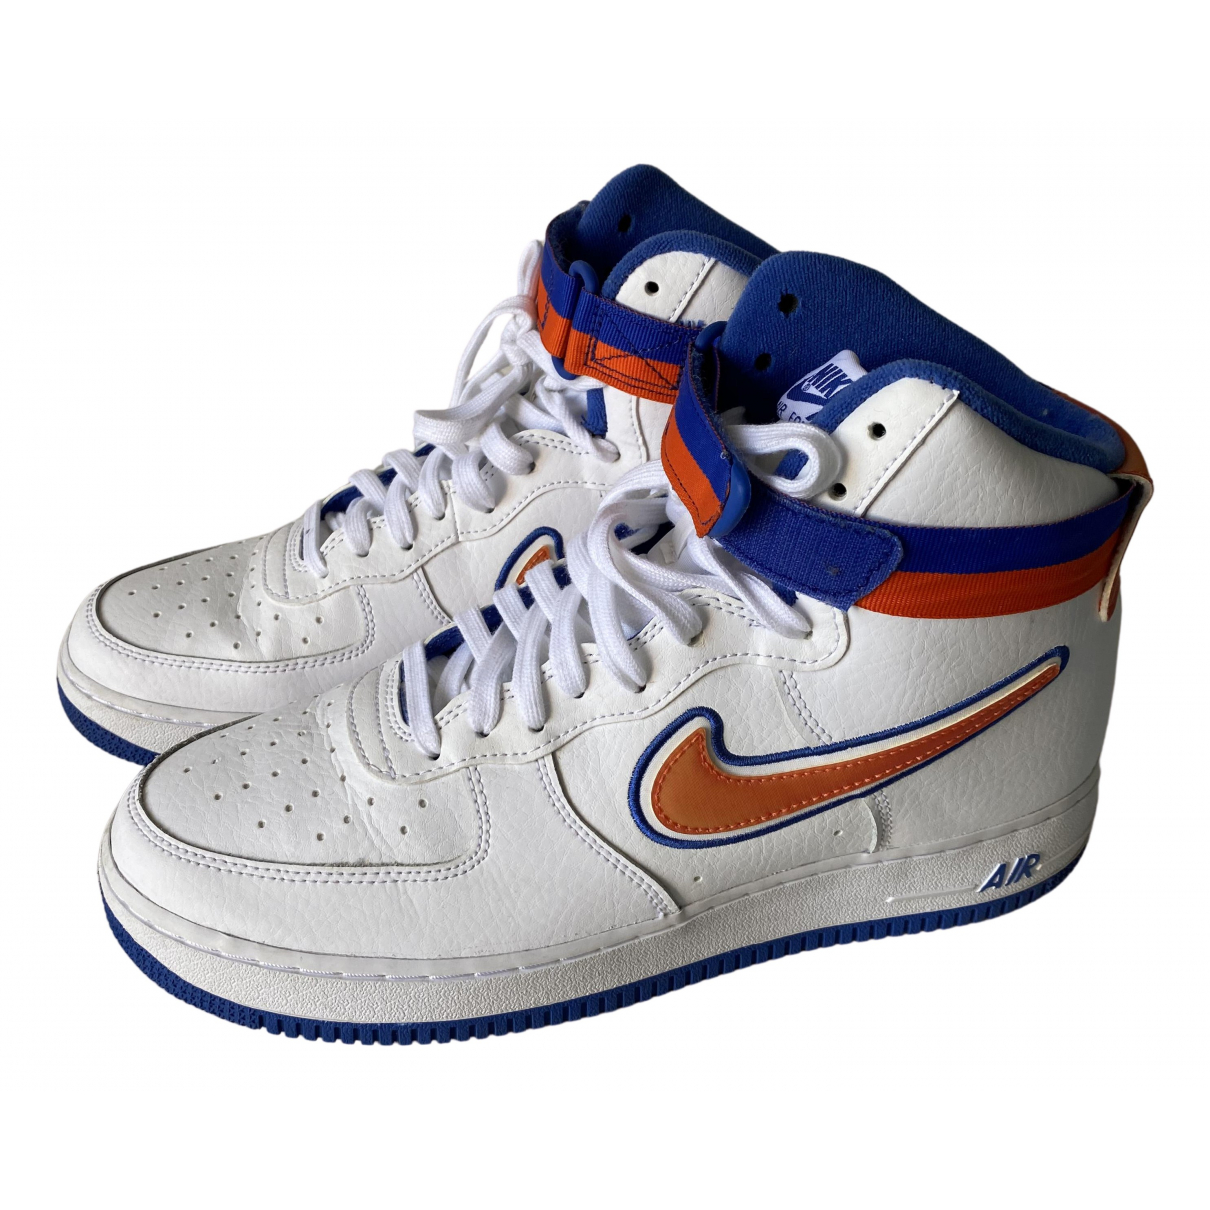 Nike Air Force 1 White Leather Trainers for Men 44 EU